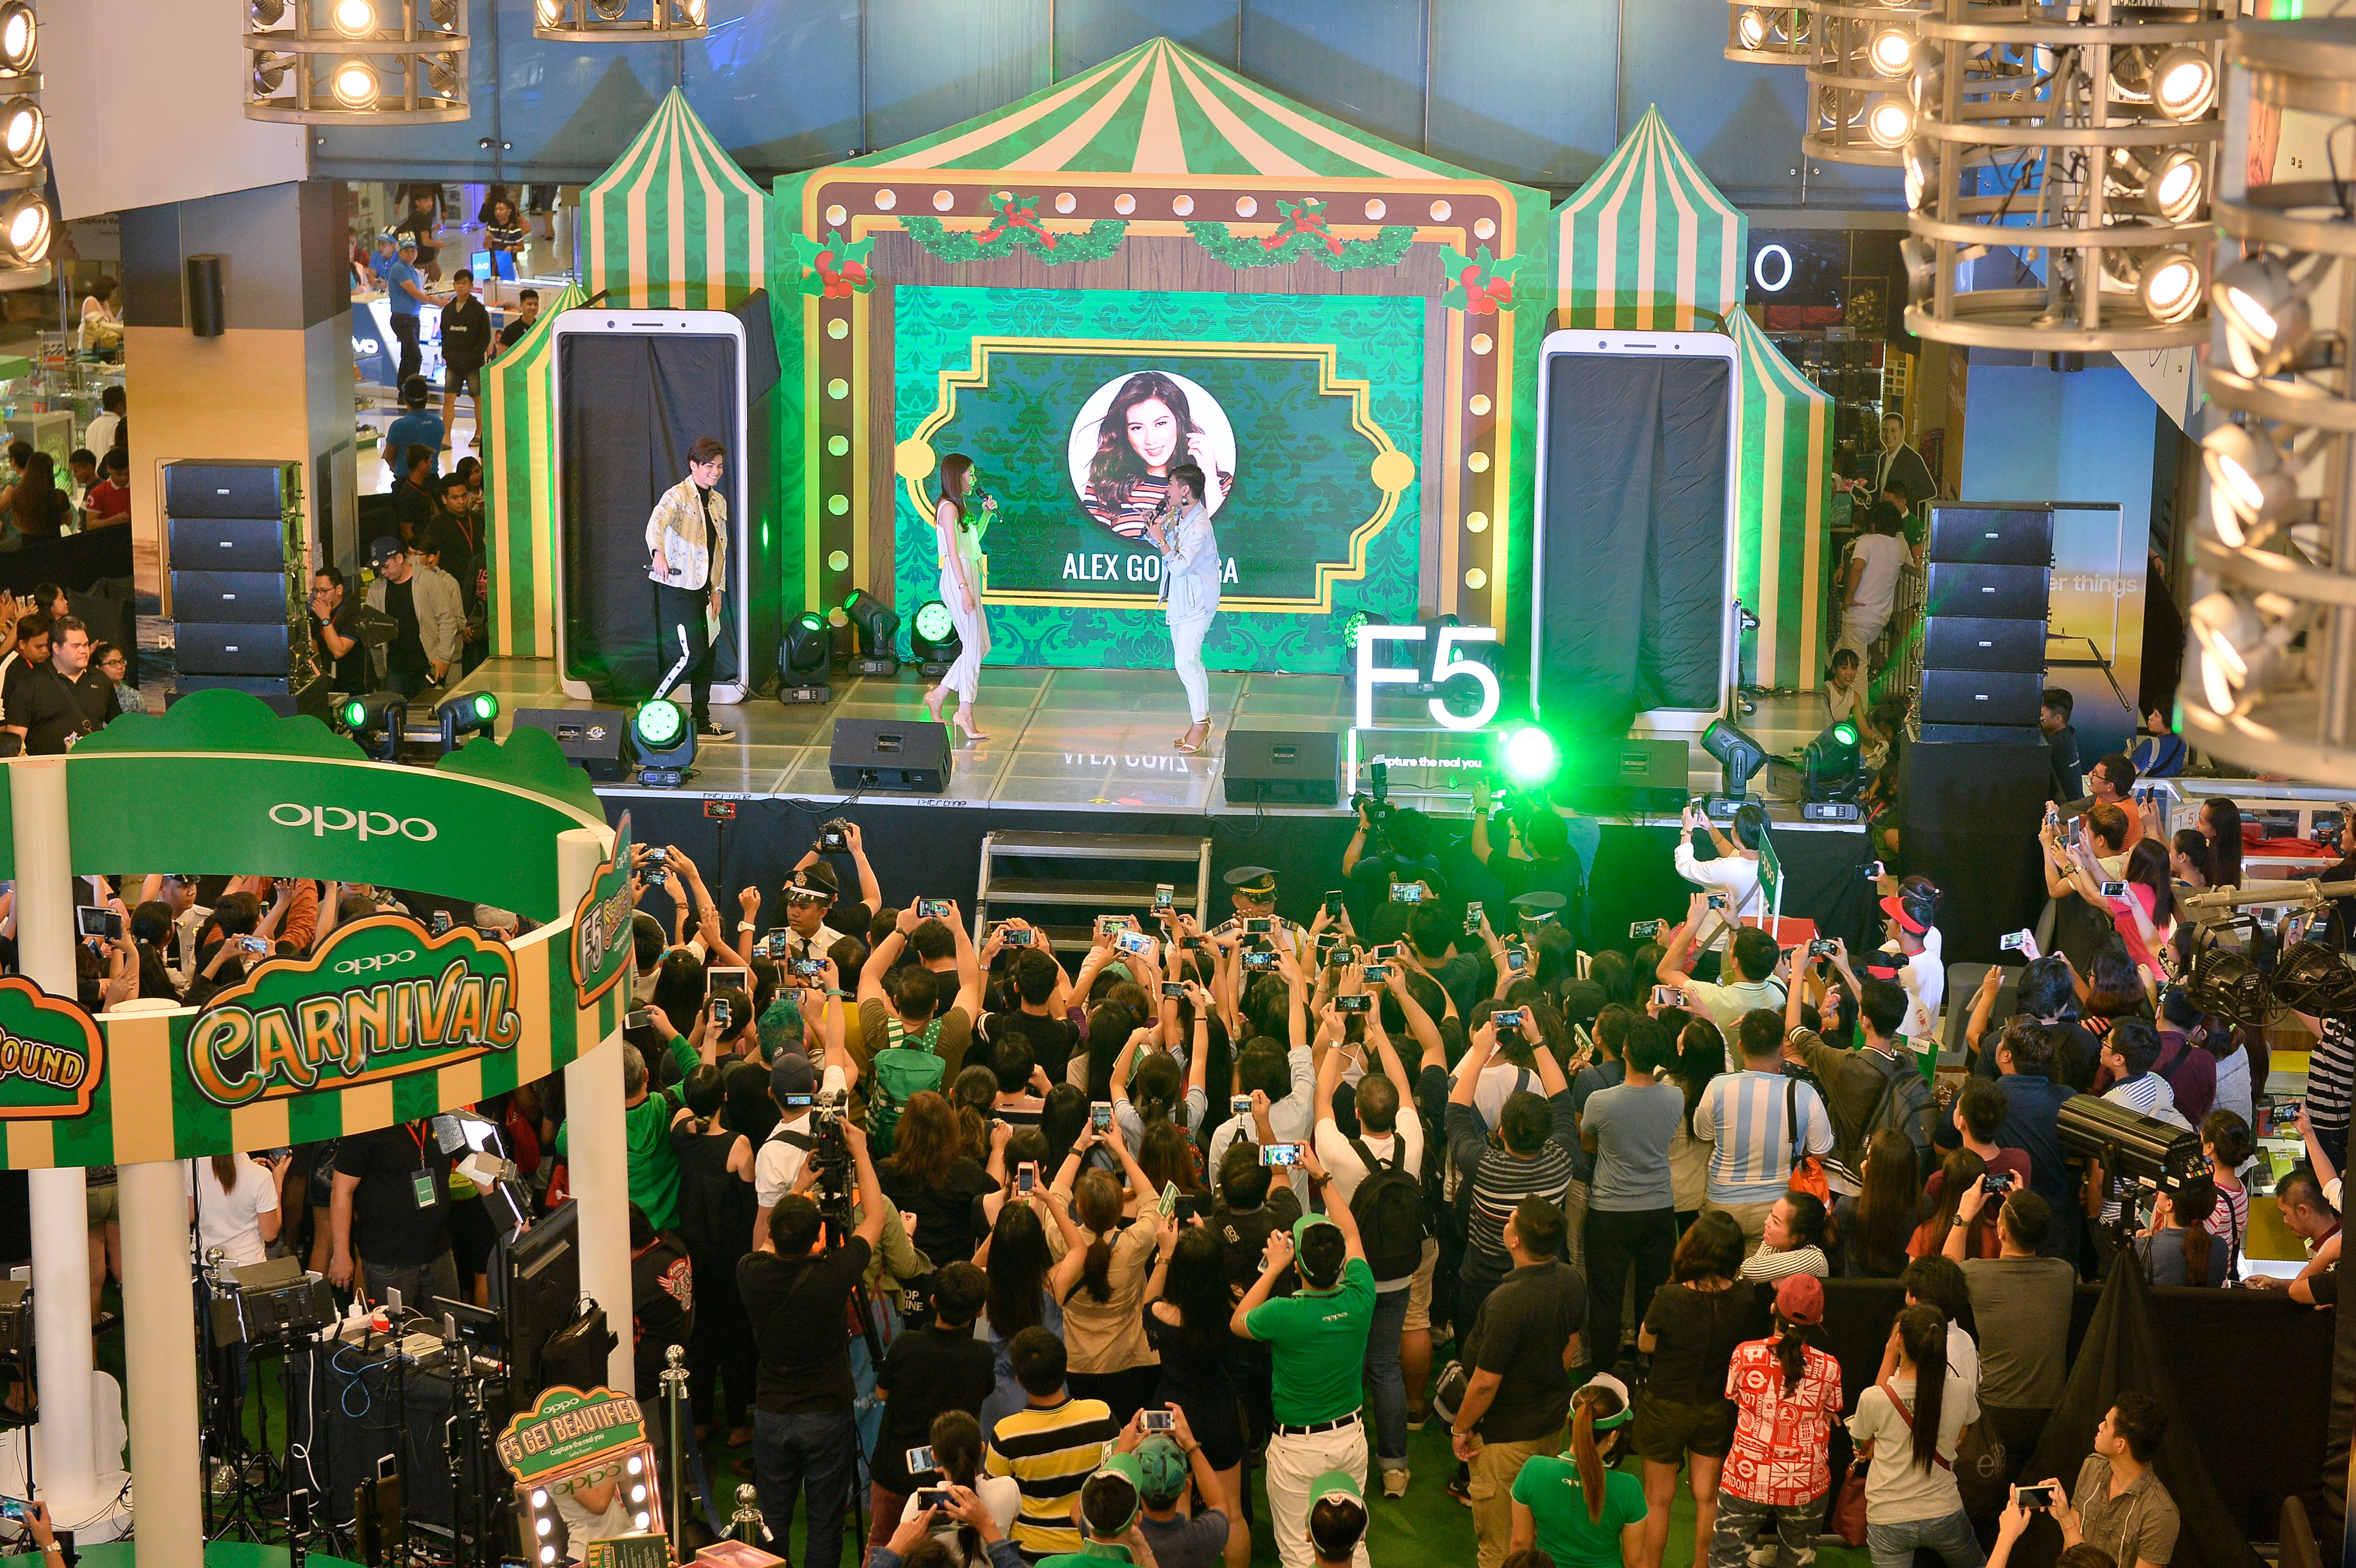 oppo, oppo f5, carnival roadshows, ronnie alonte, alex gonzaga, coleen garcia, sanya lopez, sm city north edsa, sm megamall, smartphone, artificial intelligence, ai beauty technology, beautification, stephen cheng